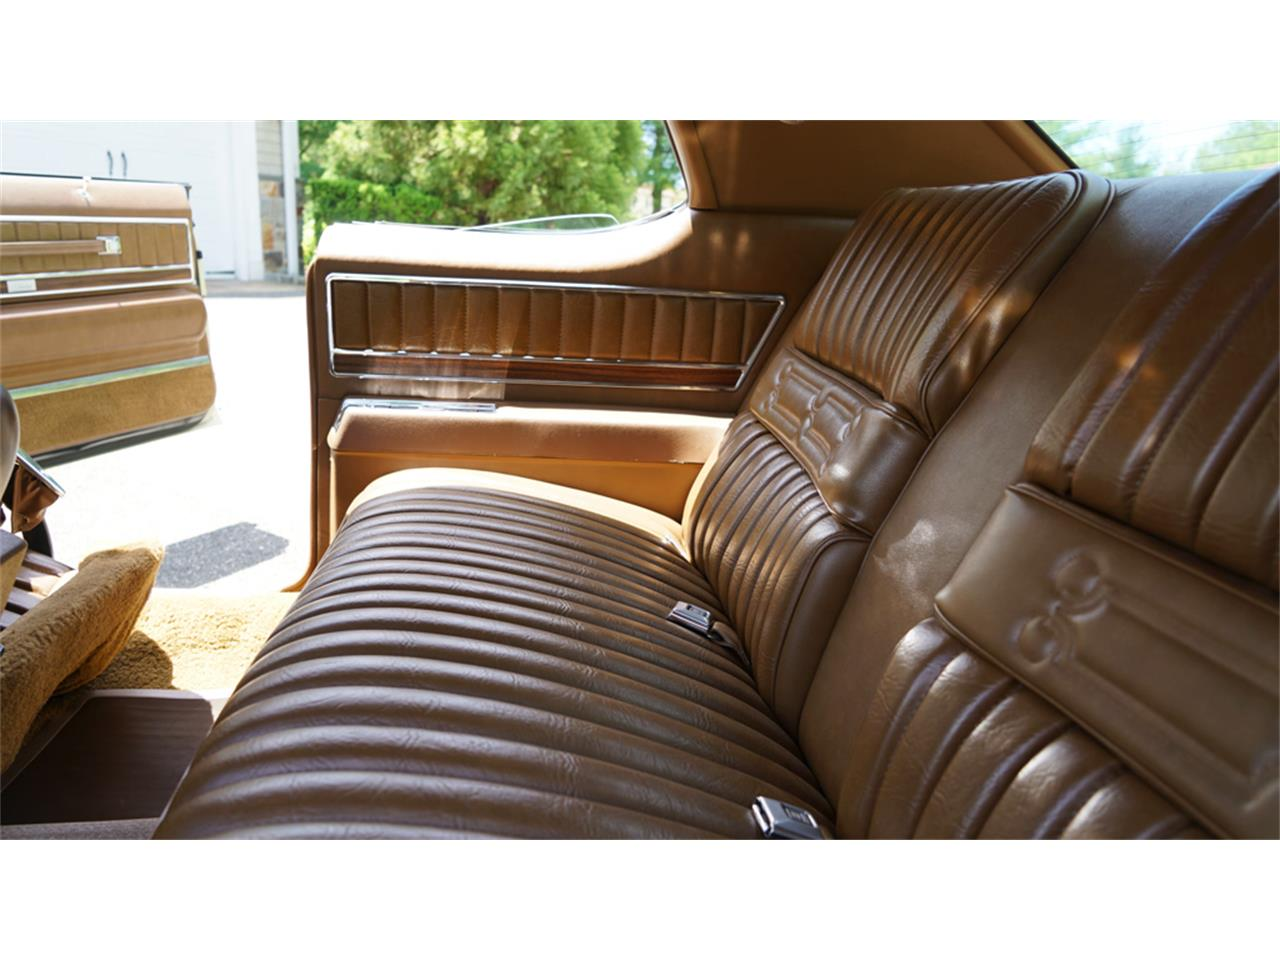 Large Picture of '72 Buick Electra 225 located in Old Bethpage New York - $32,500.00 - QAJE